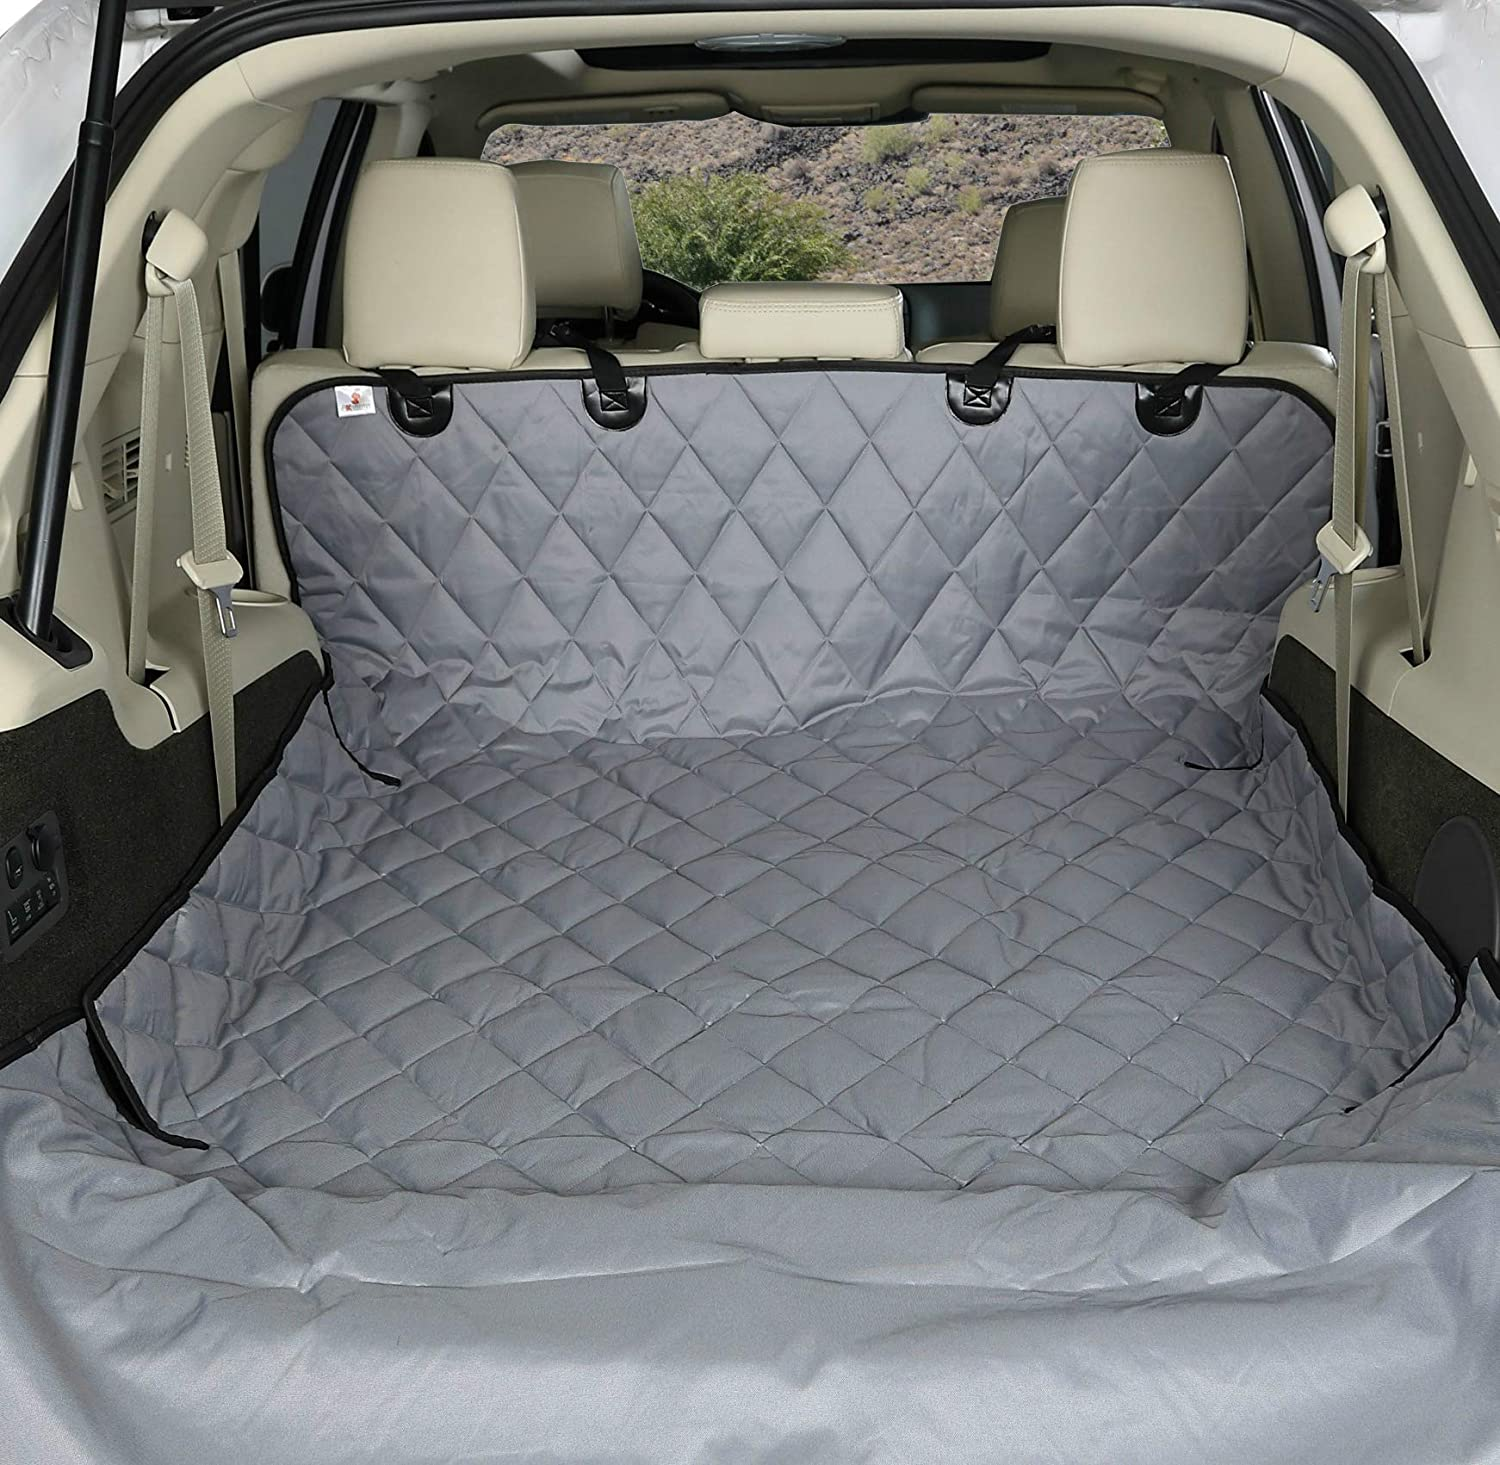 4Knines SUV Cargo Liner for Dogs - USA Based Company